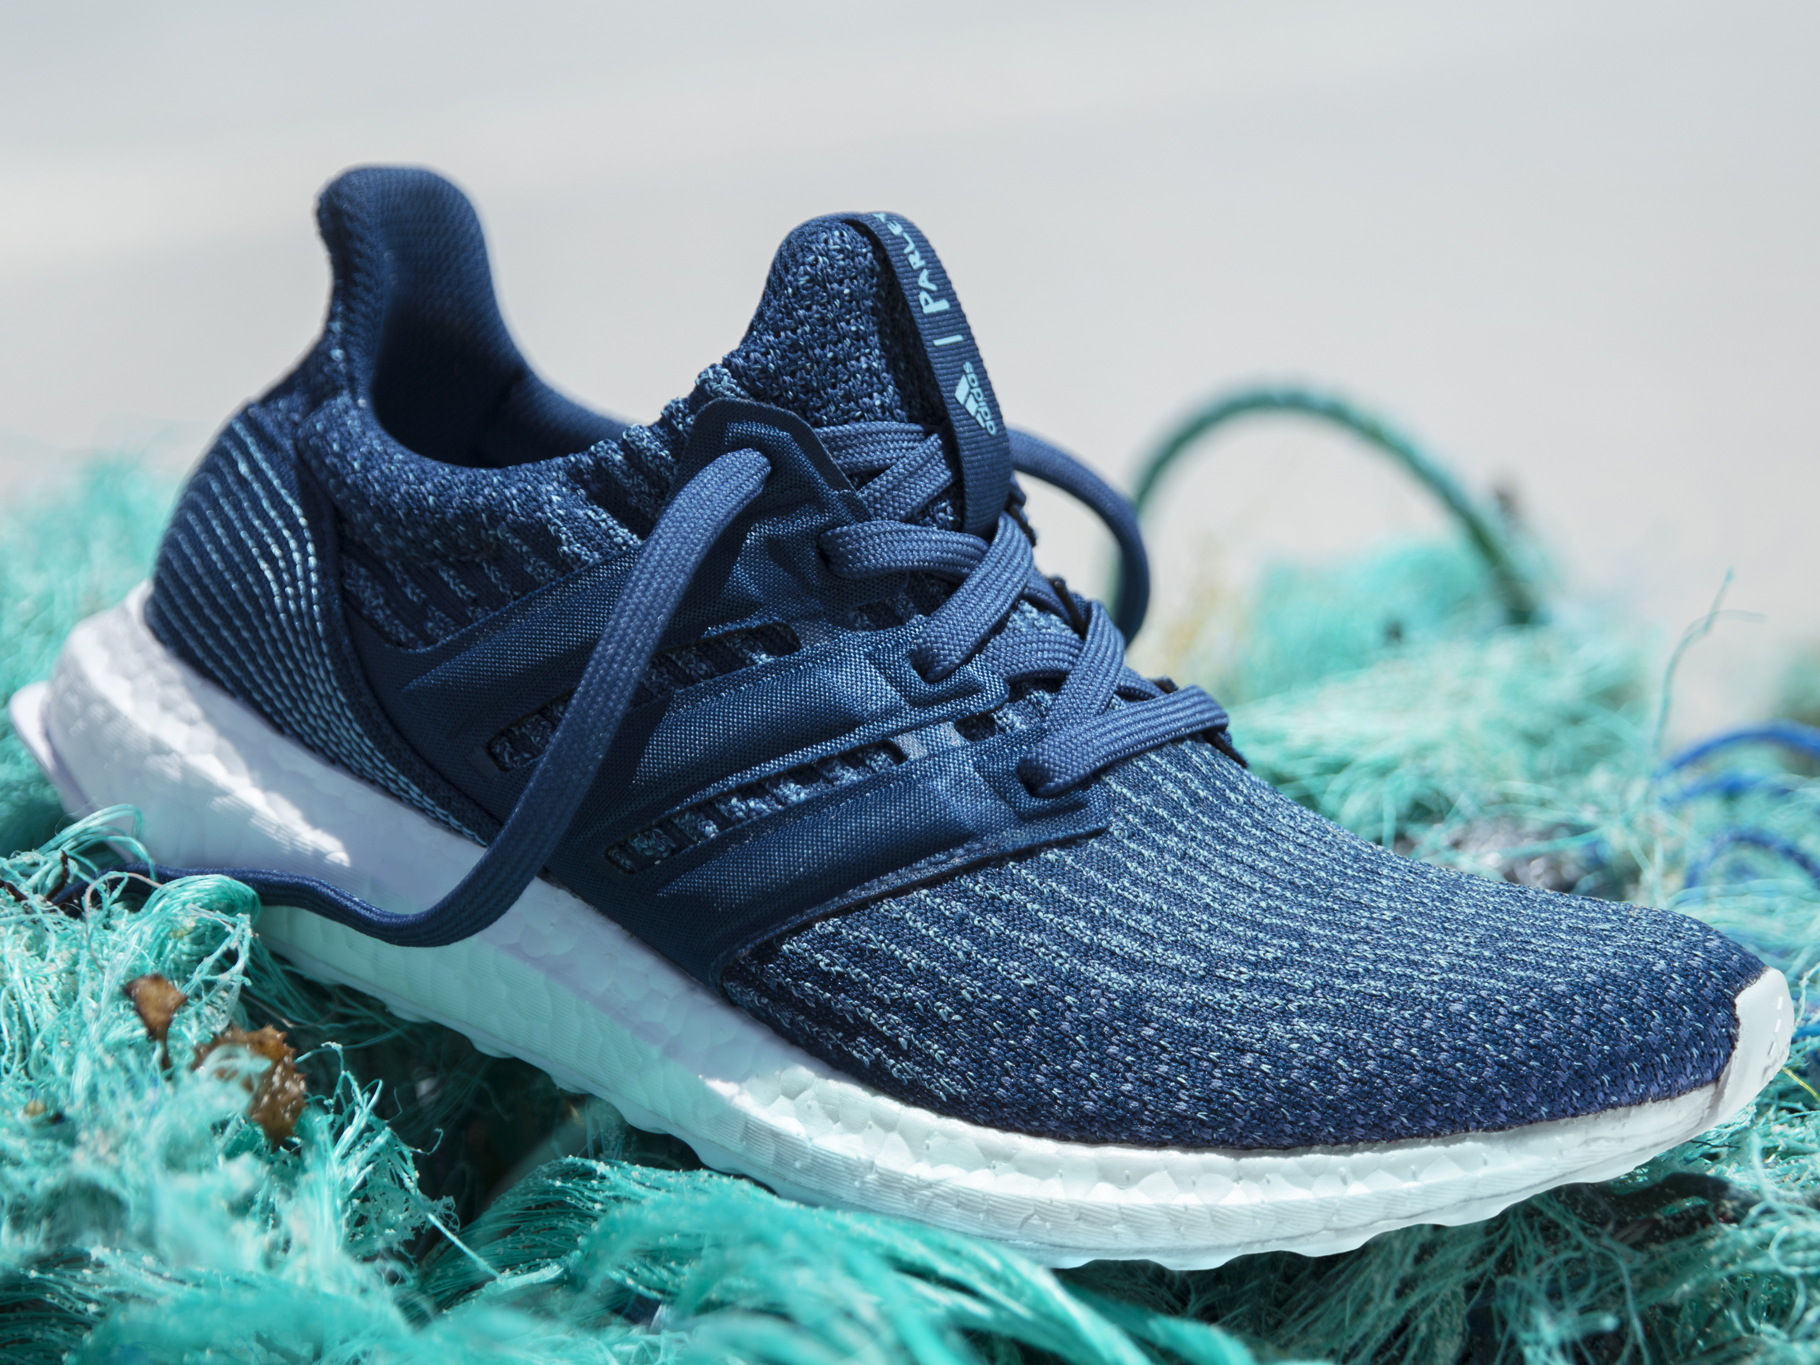 adidas-has-sold-1-million-pairs-of-sneakers-made-from-ocean-trash--and-reveals-a-new-normal-in-footwear